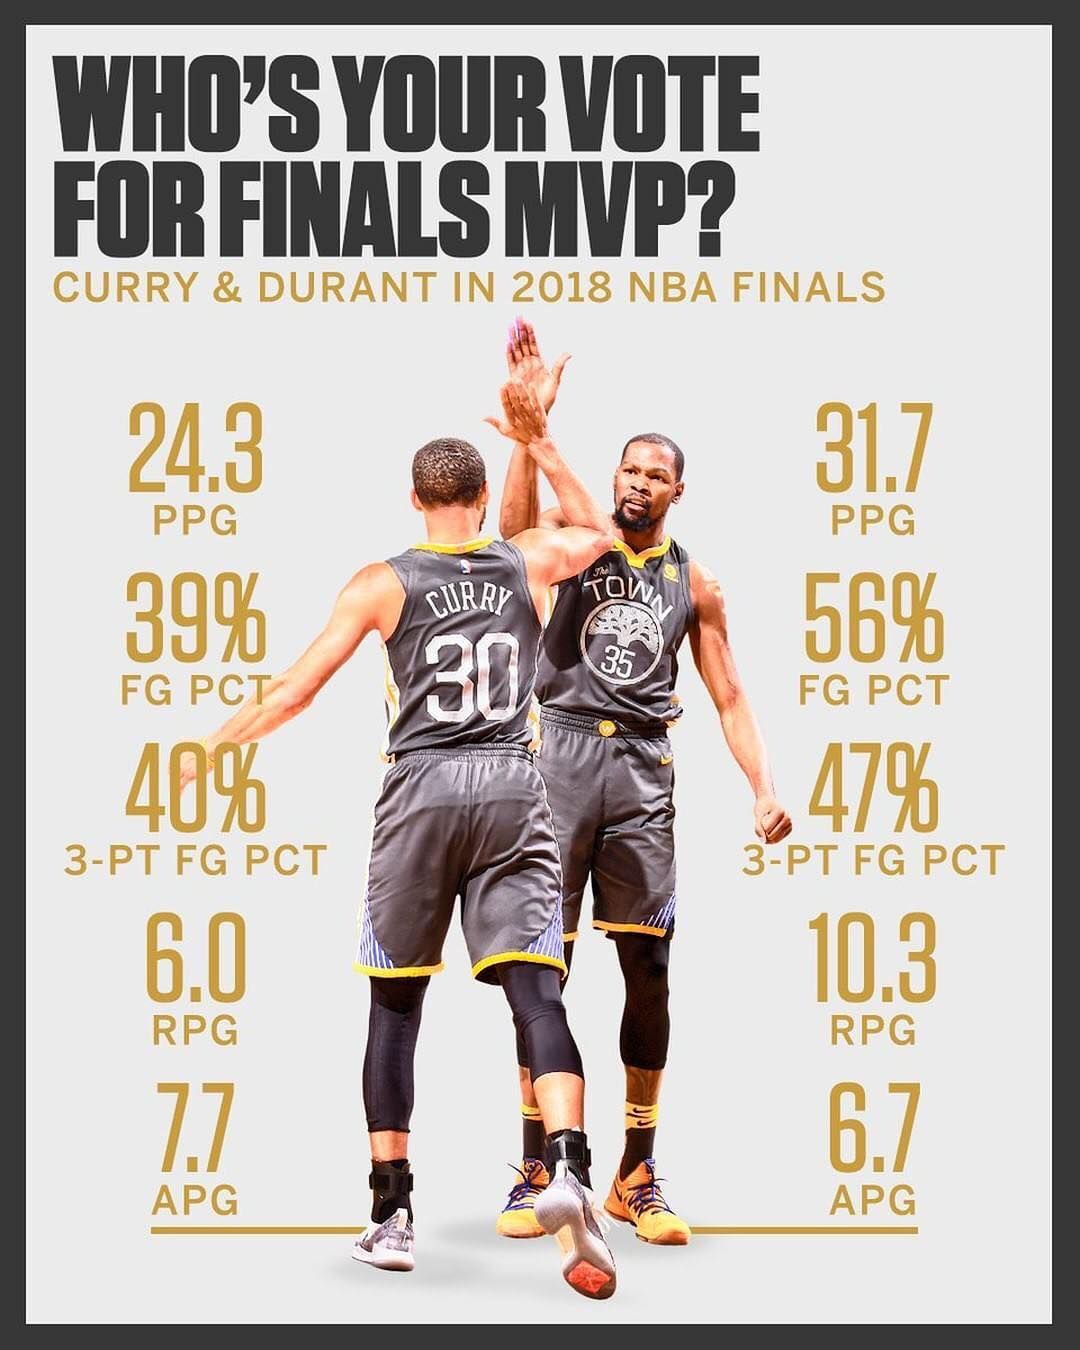 a8c1b7fda80 If the Warriors win the championship tonight who do you think should win  Finals MVP? . To me it depends on who has a better game tonight because  Curry ...